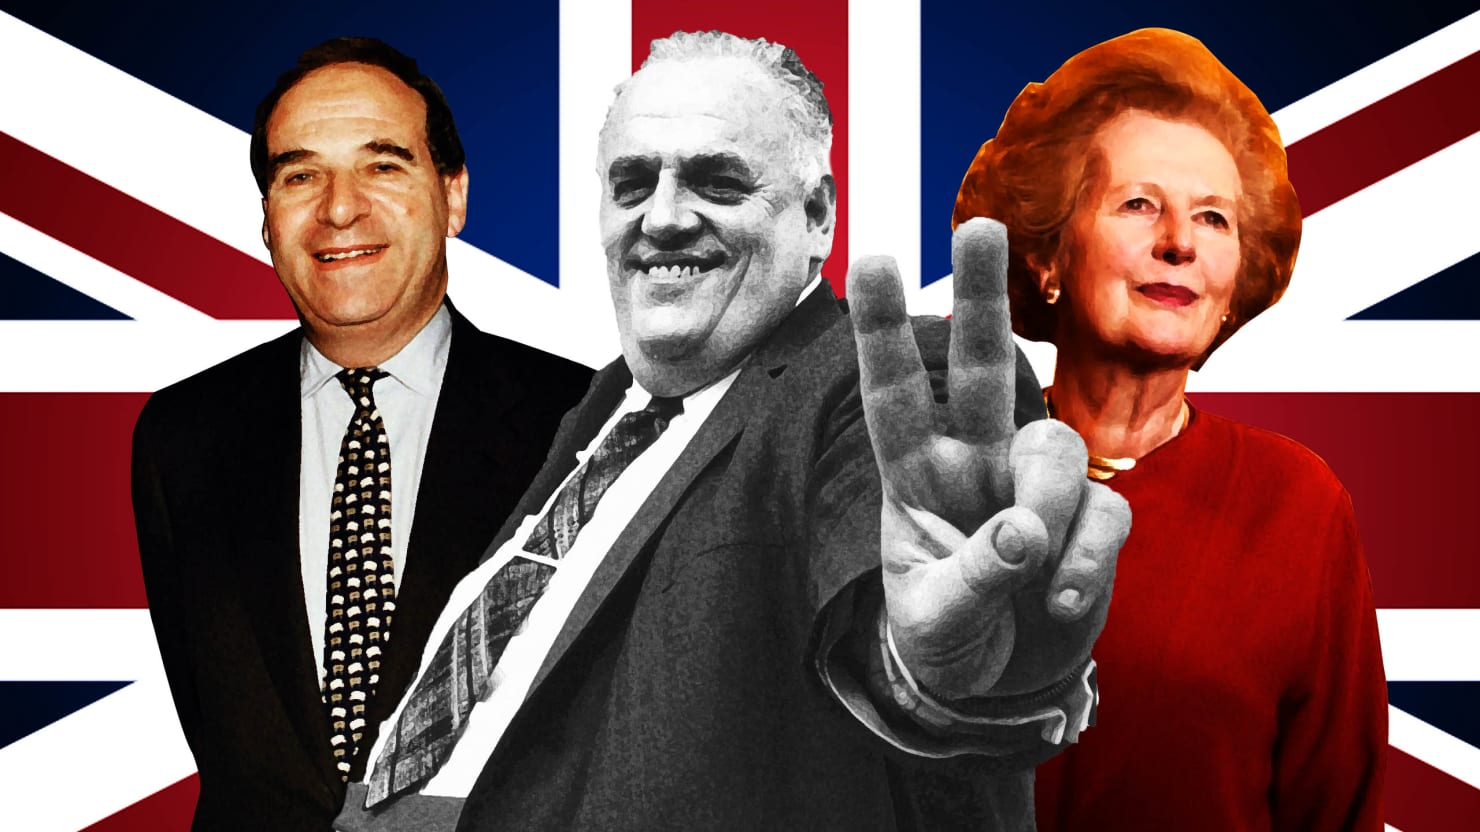 How Thatcher's Government Covered Up a VIP Pedophile Ring